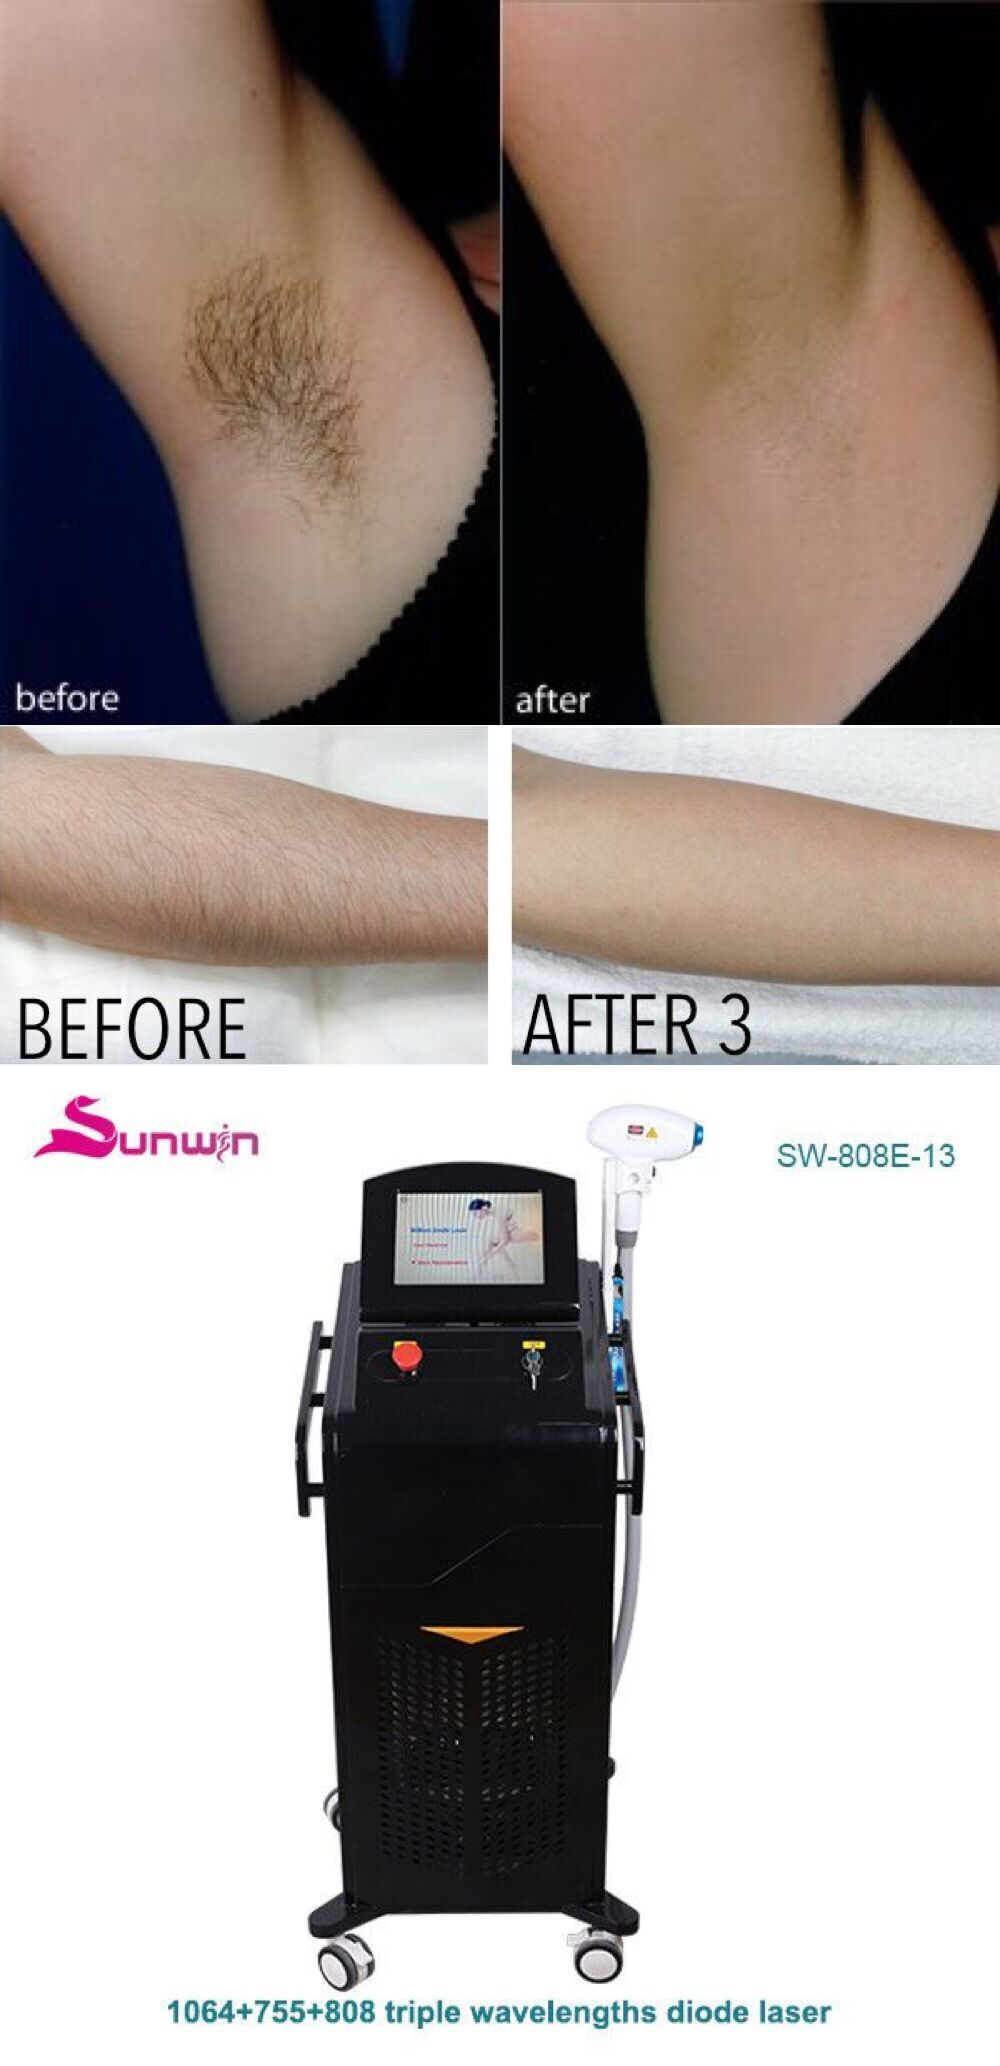 The Diode 808 Laser Is The Gold Standard In Permanent Hair Removal And Is Effective On All Pigmented Diode Laser Hair Removal Laser Hair Hair Removal Permanent